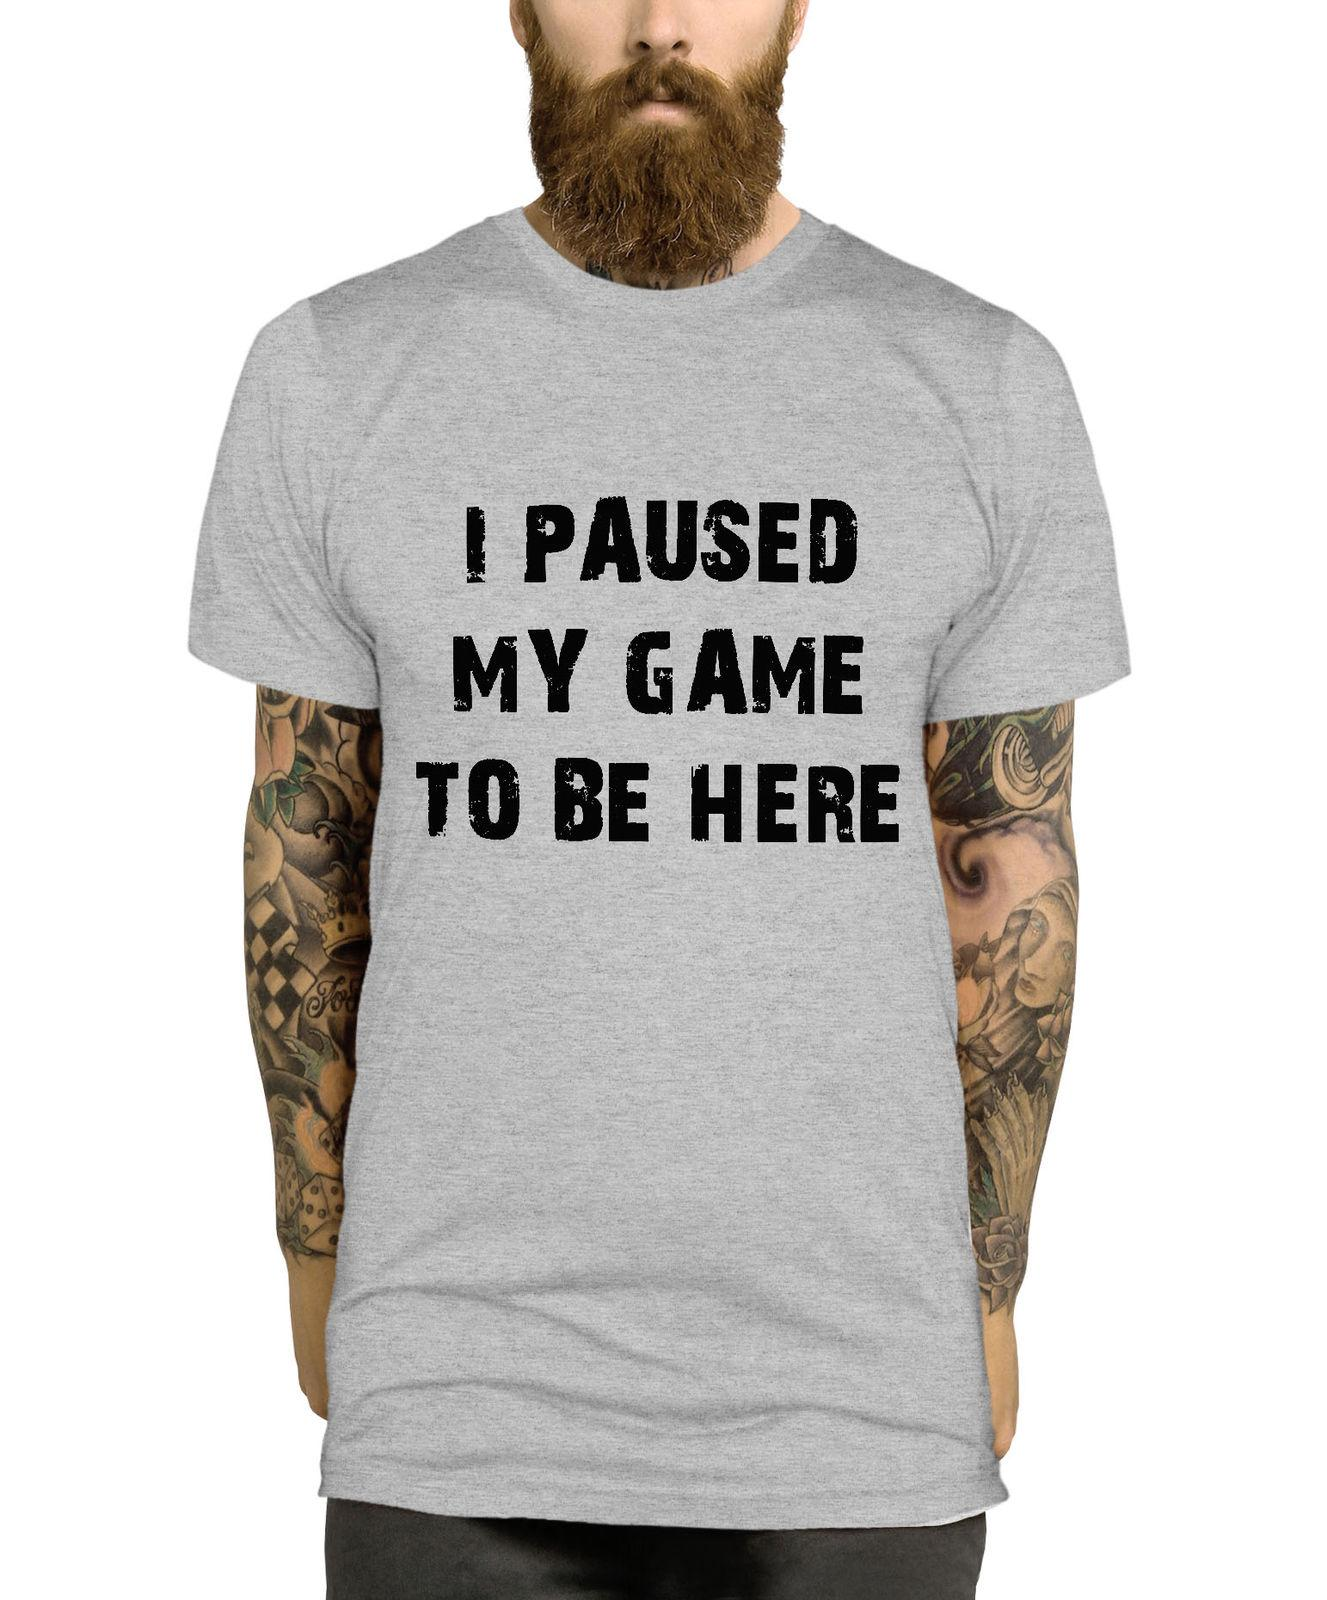 cf83a167 I Paused My Game To Be Here T Shirt Funny Gaming Gamer Top Men Gift Child  L320Funny Unisex Casual Gift Funny Political T Shirts Tee Designs From ...